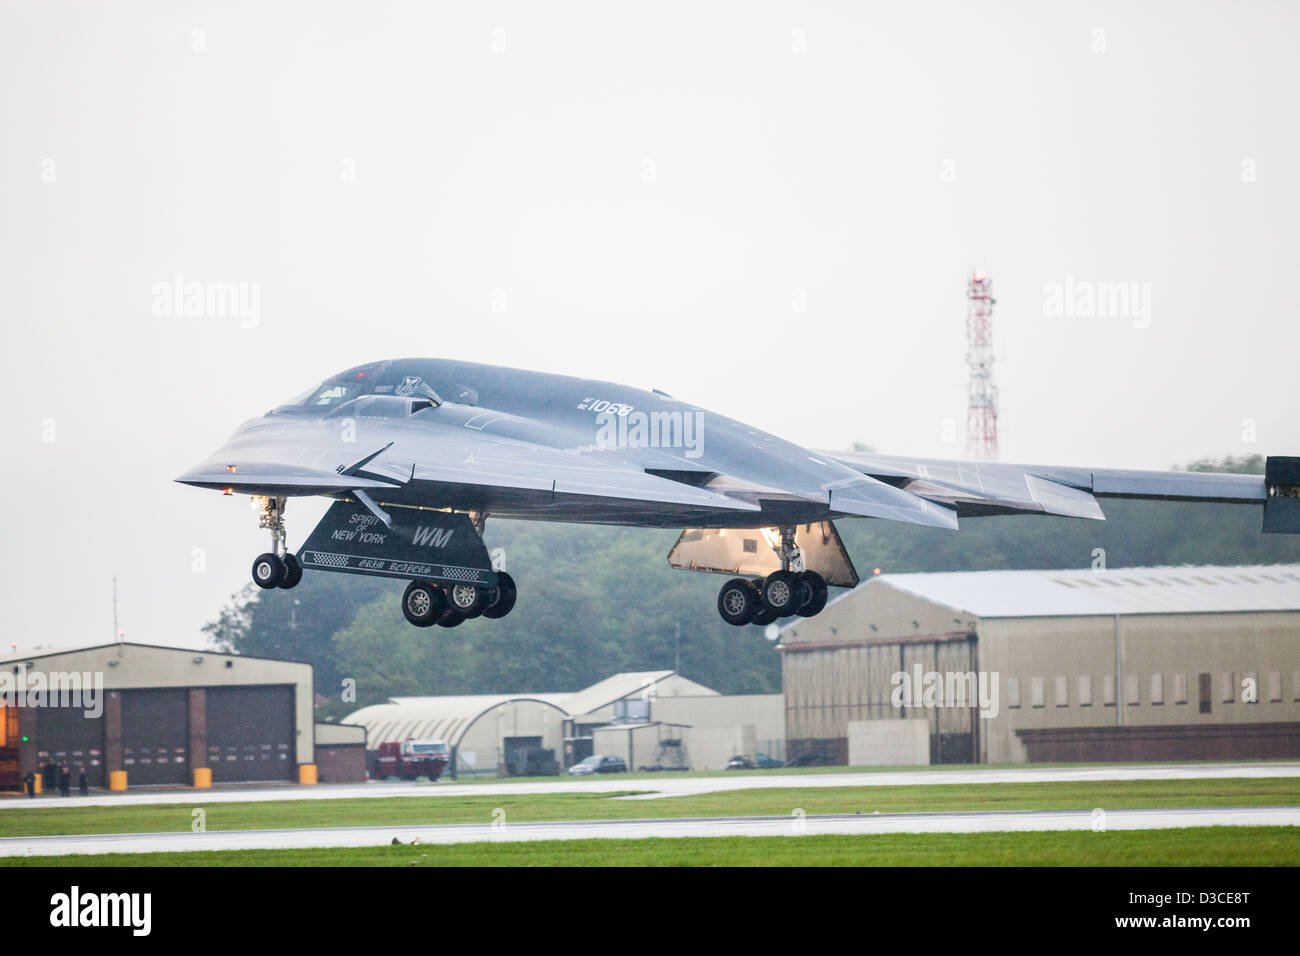 B2 Bomber on Approach at RAF Fairford - Stock Image